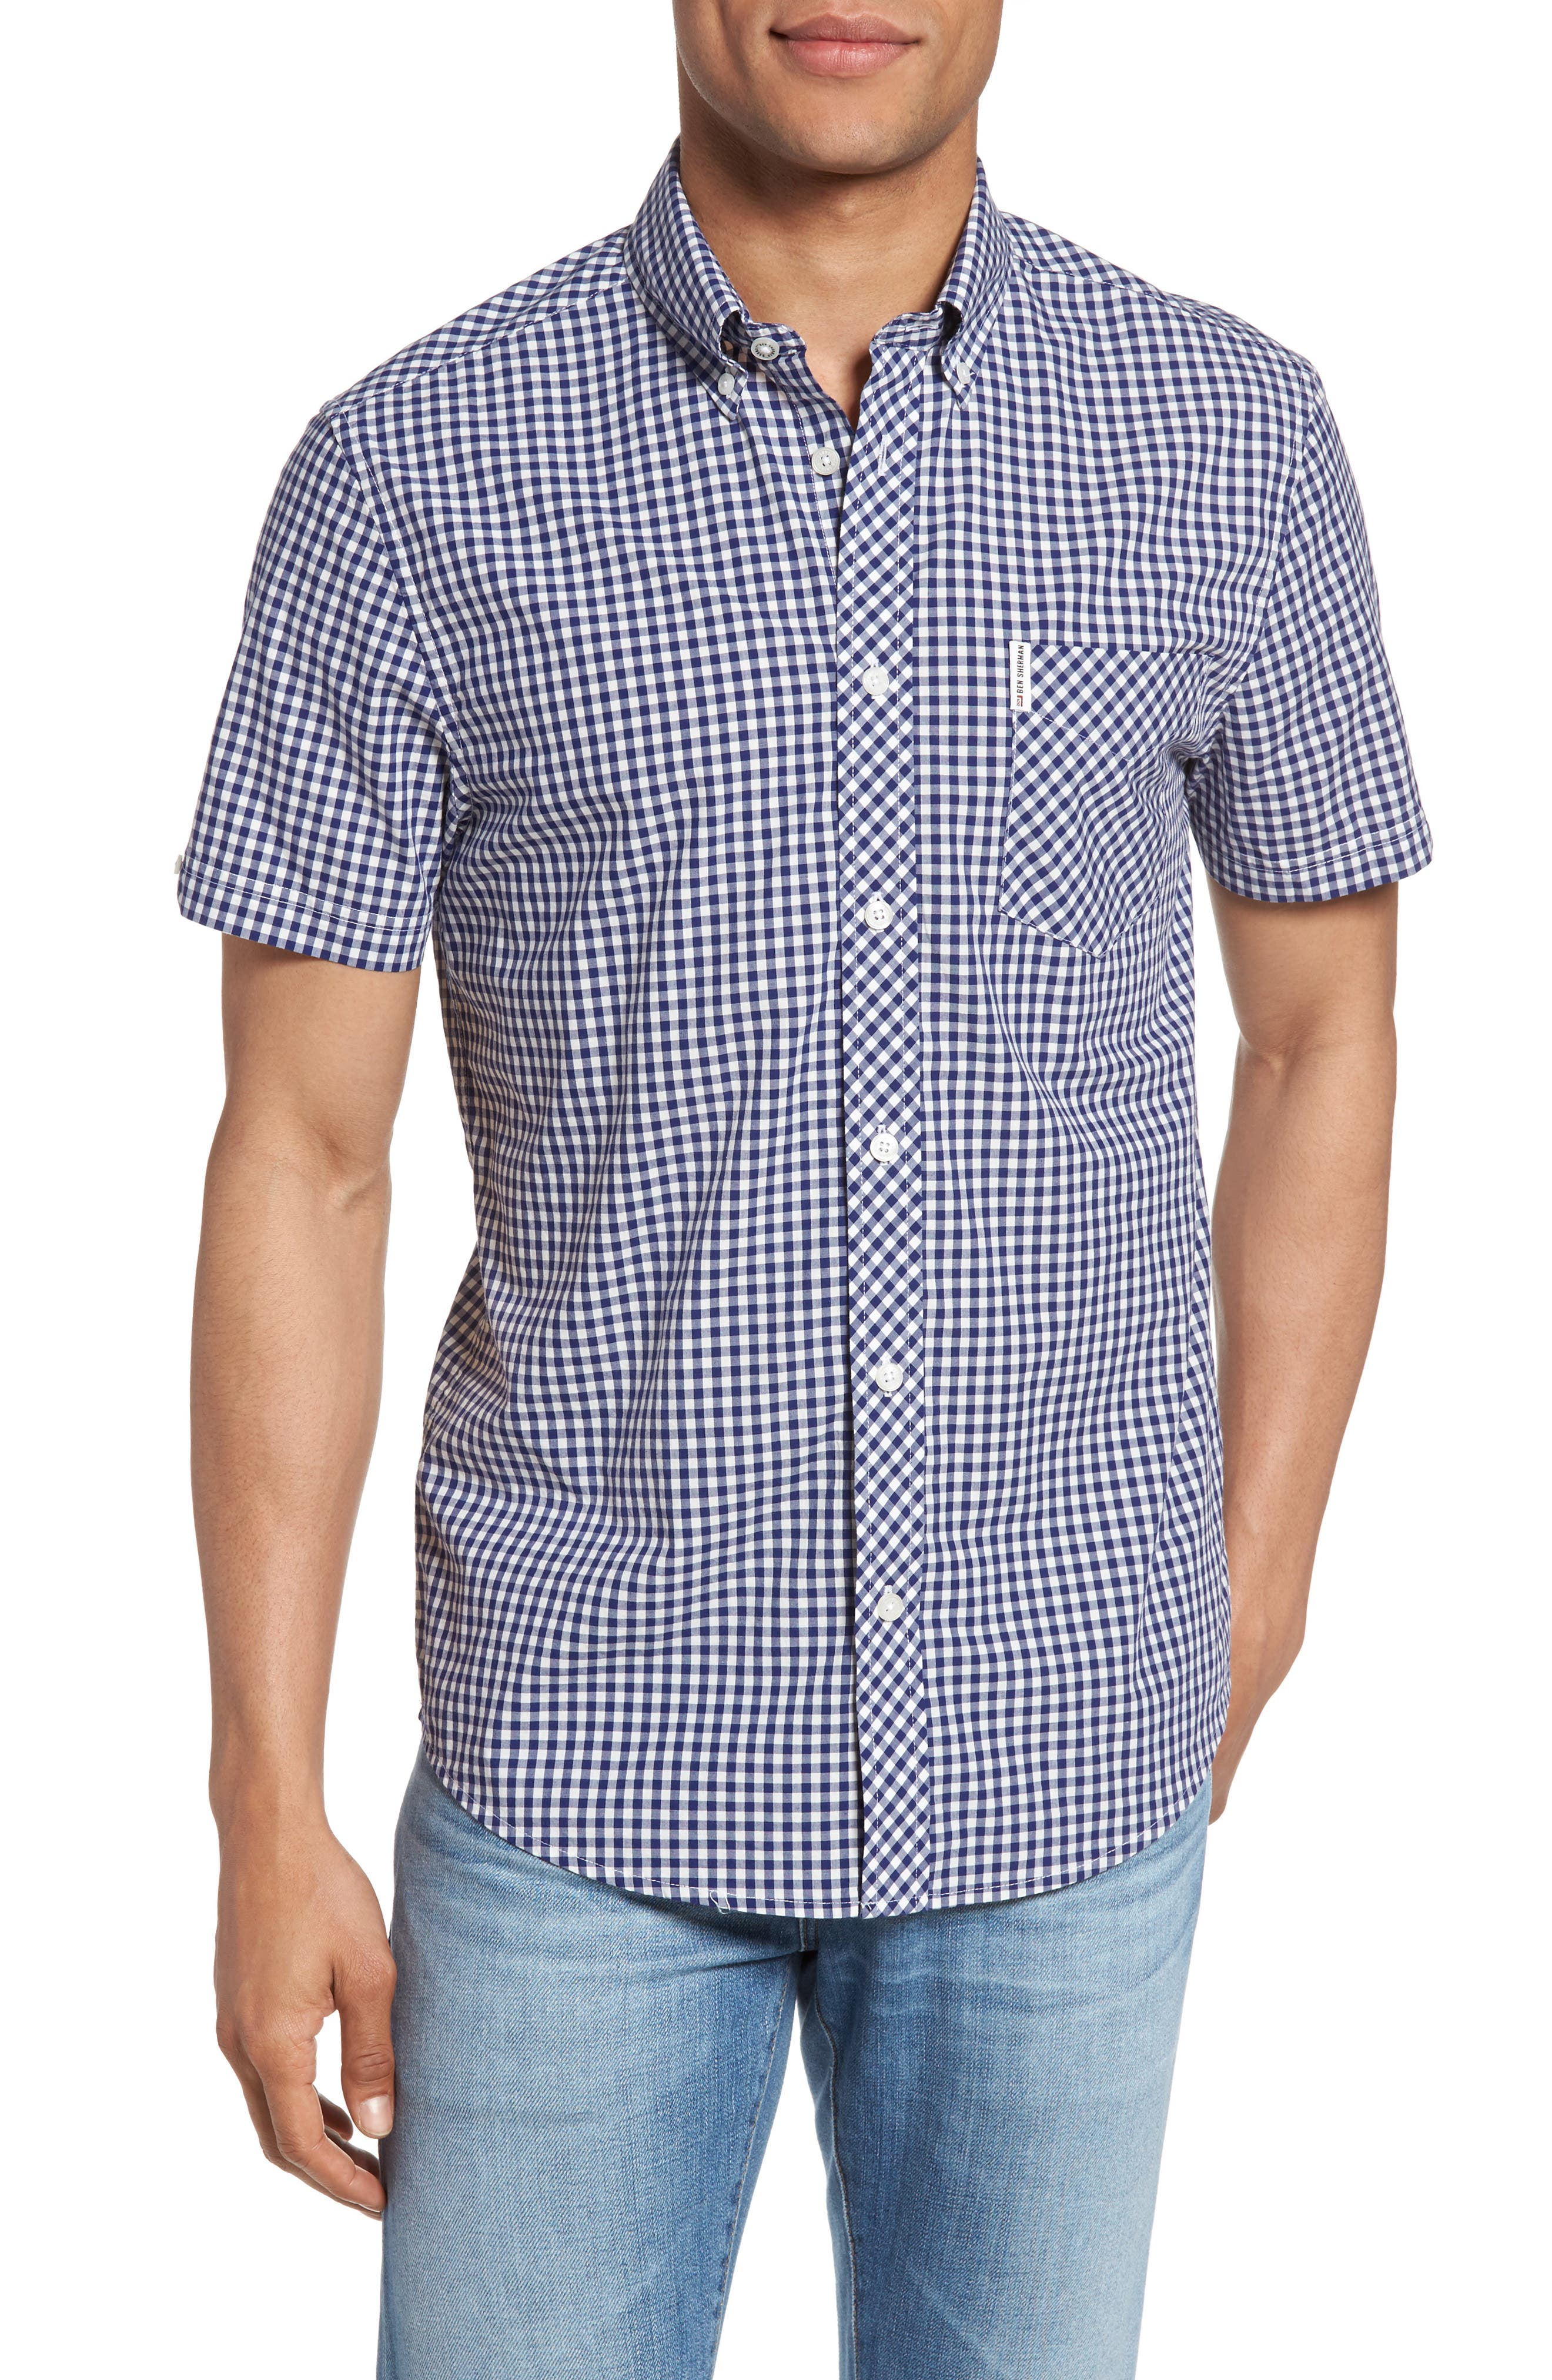 Ben Sherman Core Mod Fit Gingham Shirt